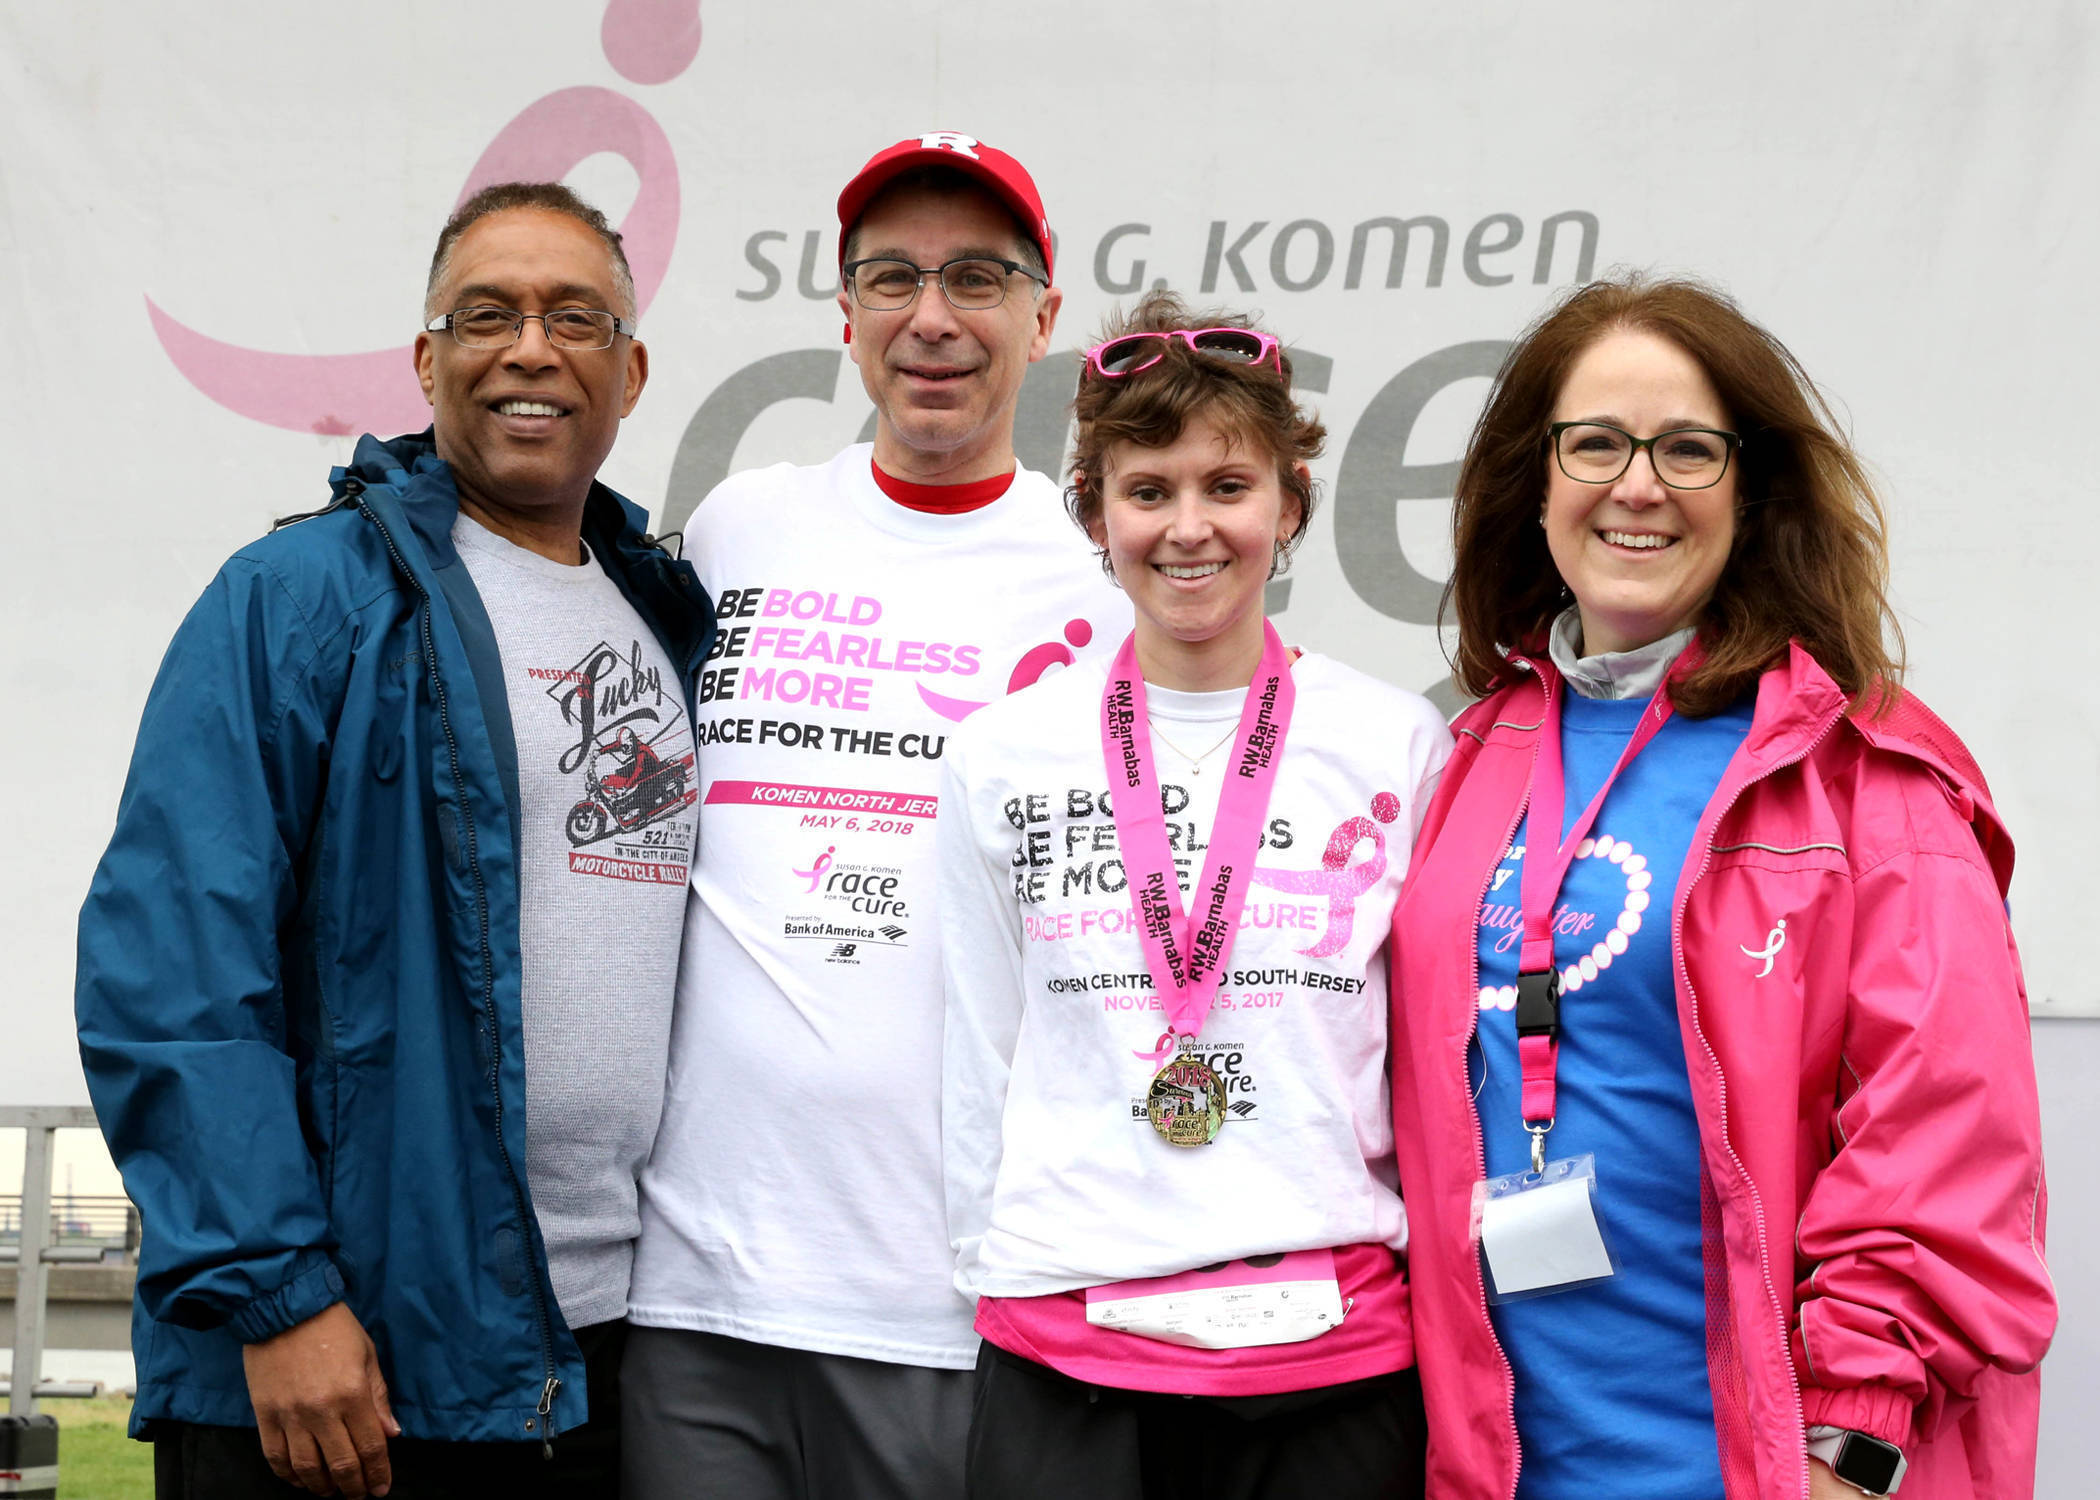 5d397949ab4f1bd66757_fdc2e5247a8faa763a83_Michele_Caselnova_at_2018_Komen_NJ_Race_for_the_Cure-ES.jpg